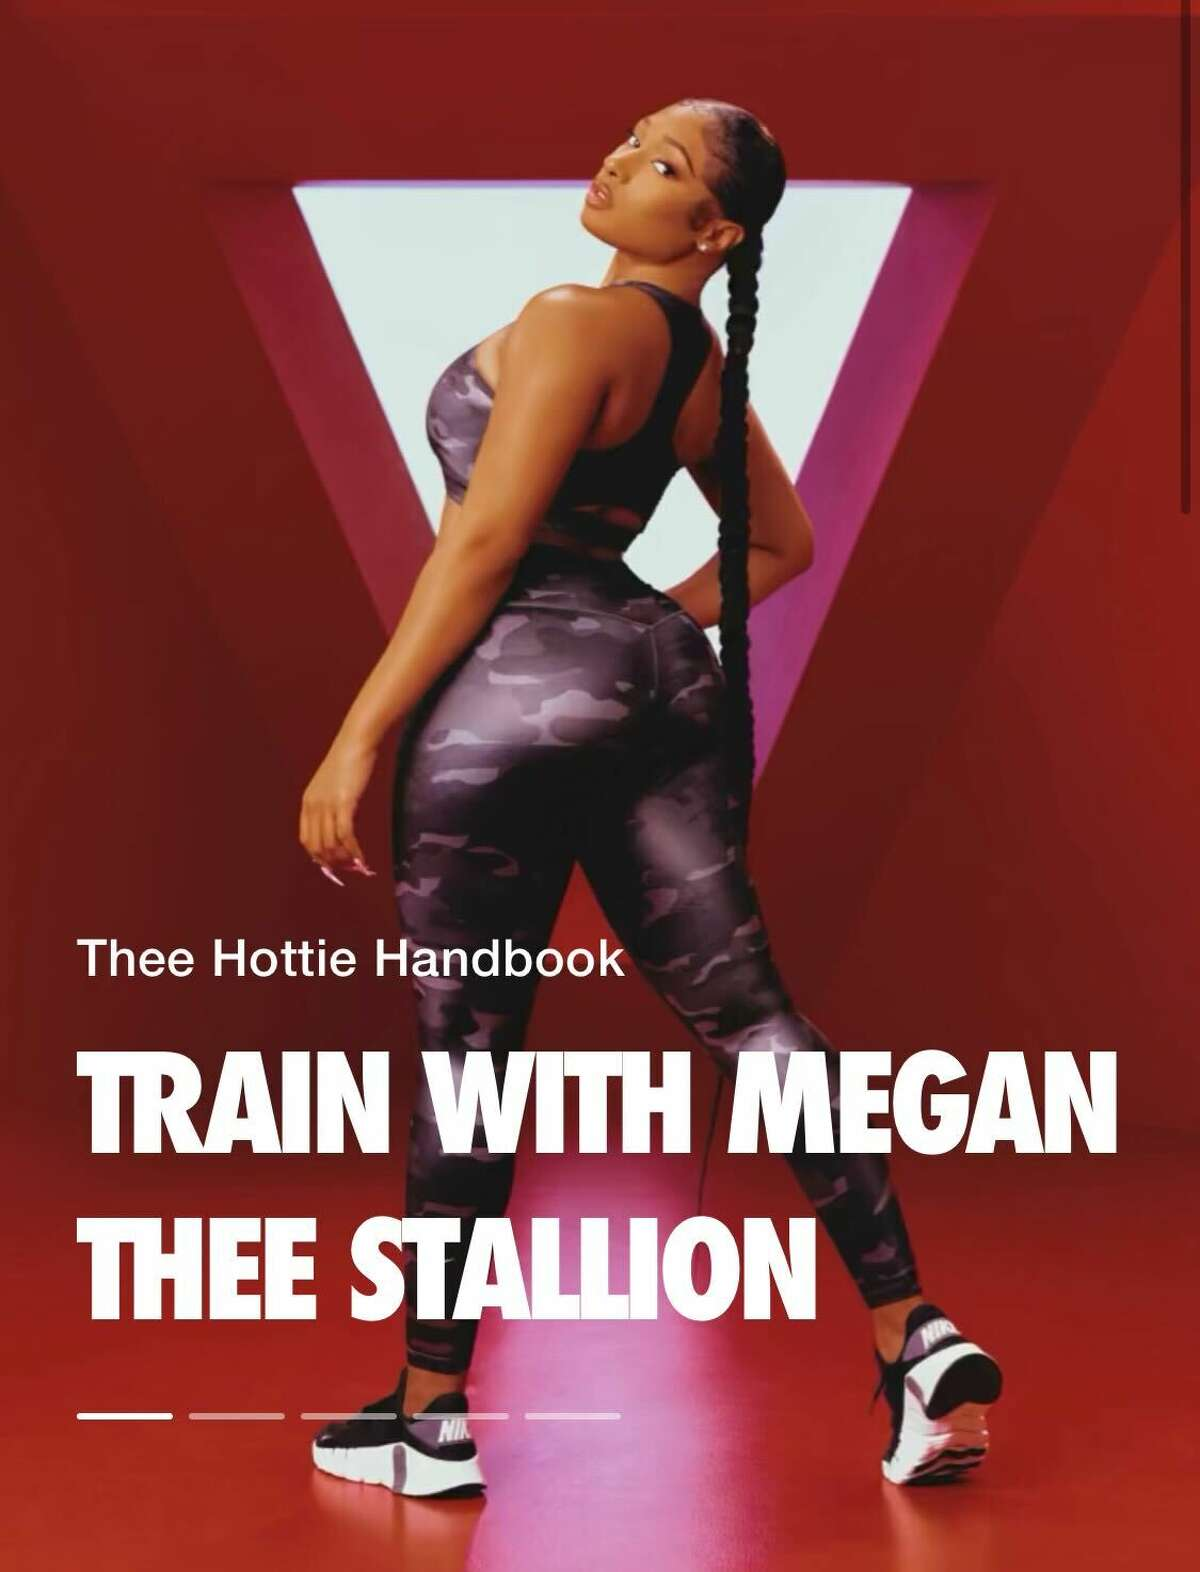 Houston rapper Meg Thee Stallion is collaborating with Nike for a series of workouts designed to build energy, endurance and balance, all accessible through the Nike Training Club app.